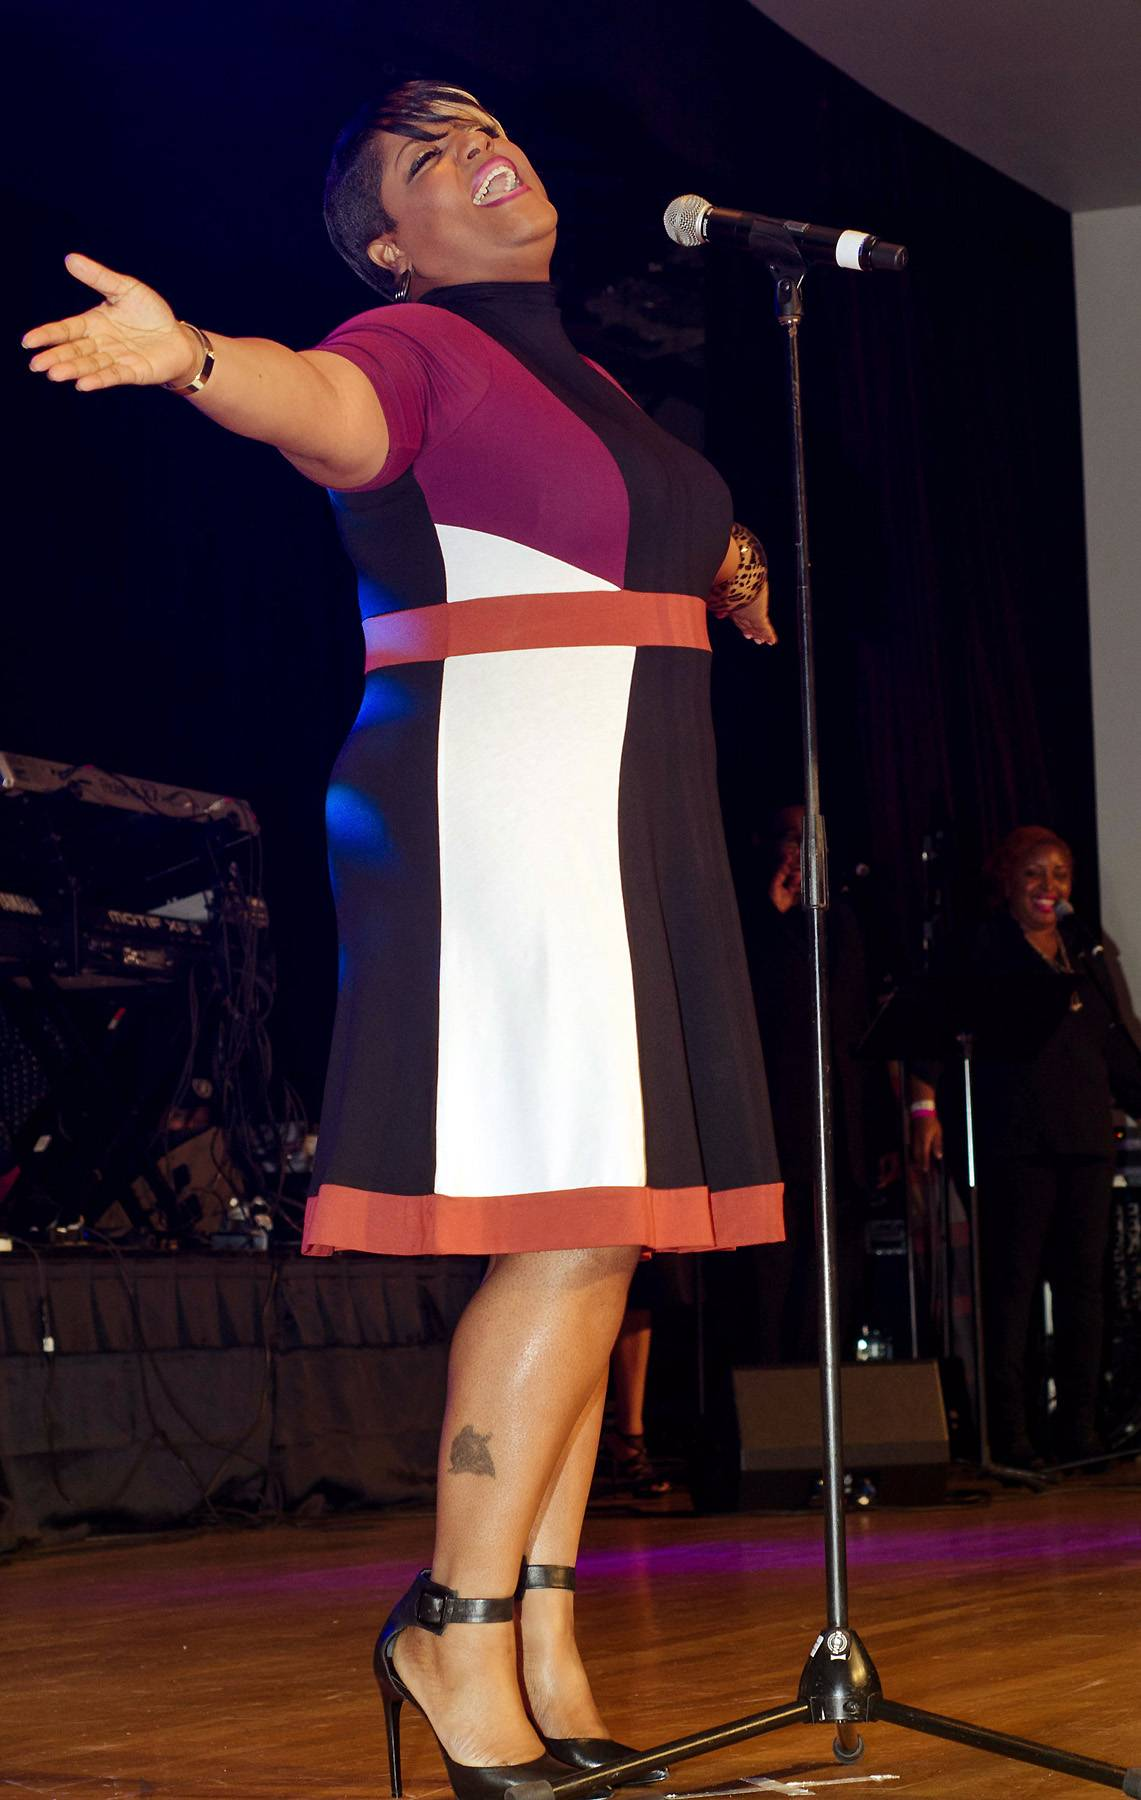 Anita Wilson - Grammy-nominated Anita Wilson's summer release of sophomore album Vintage Worship continues to blend praise and worship with contemporary pop-gospel energy. Her new music shows a fresh, unpredictable and genuine connection to gospel.(Photo: Johnny Nunez/WireImage)